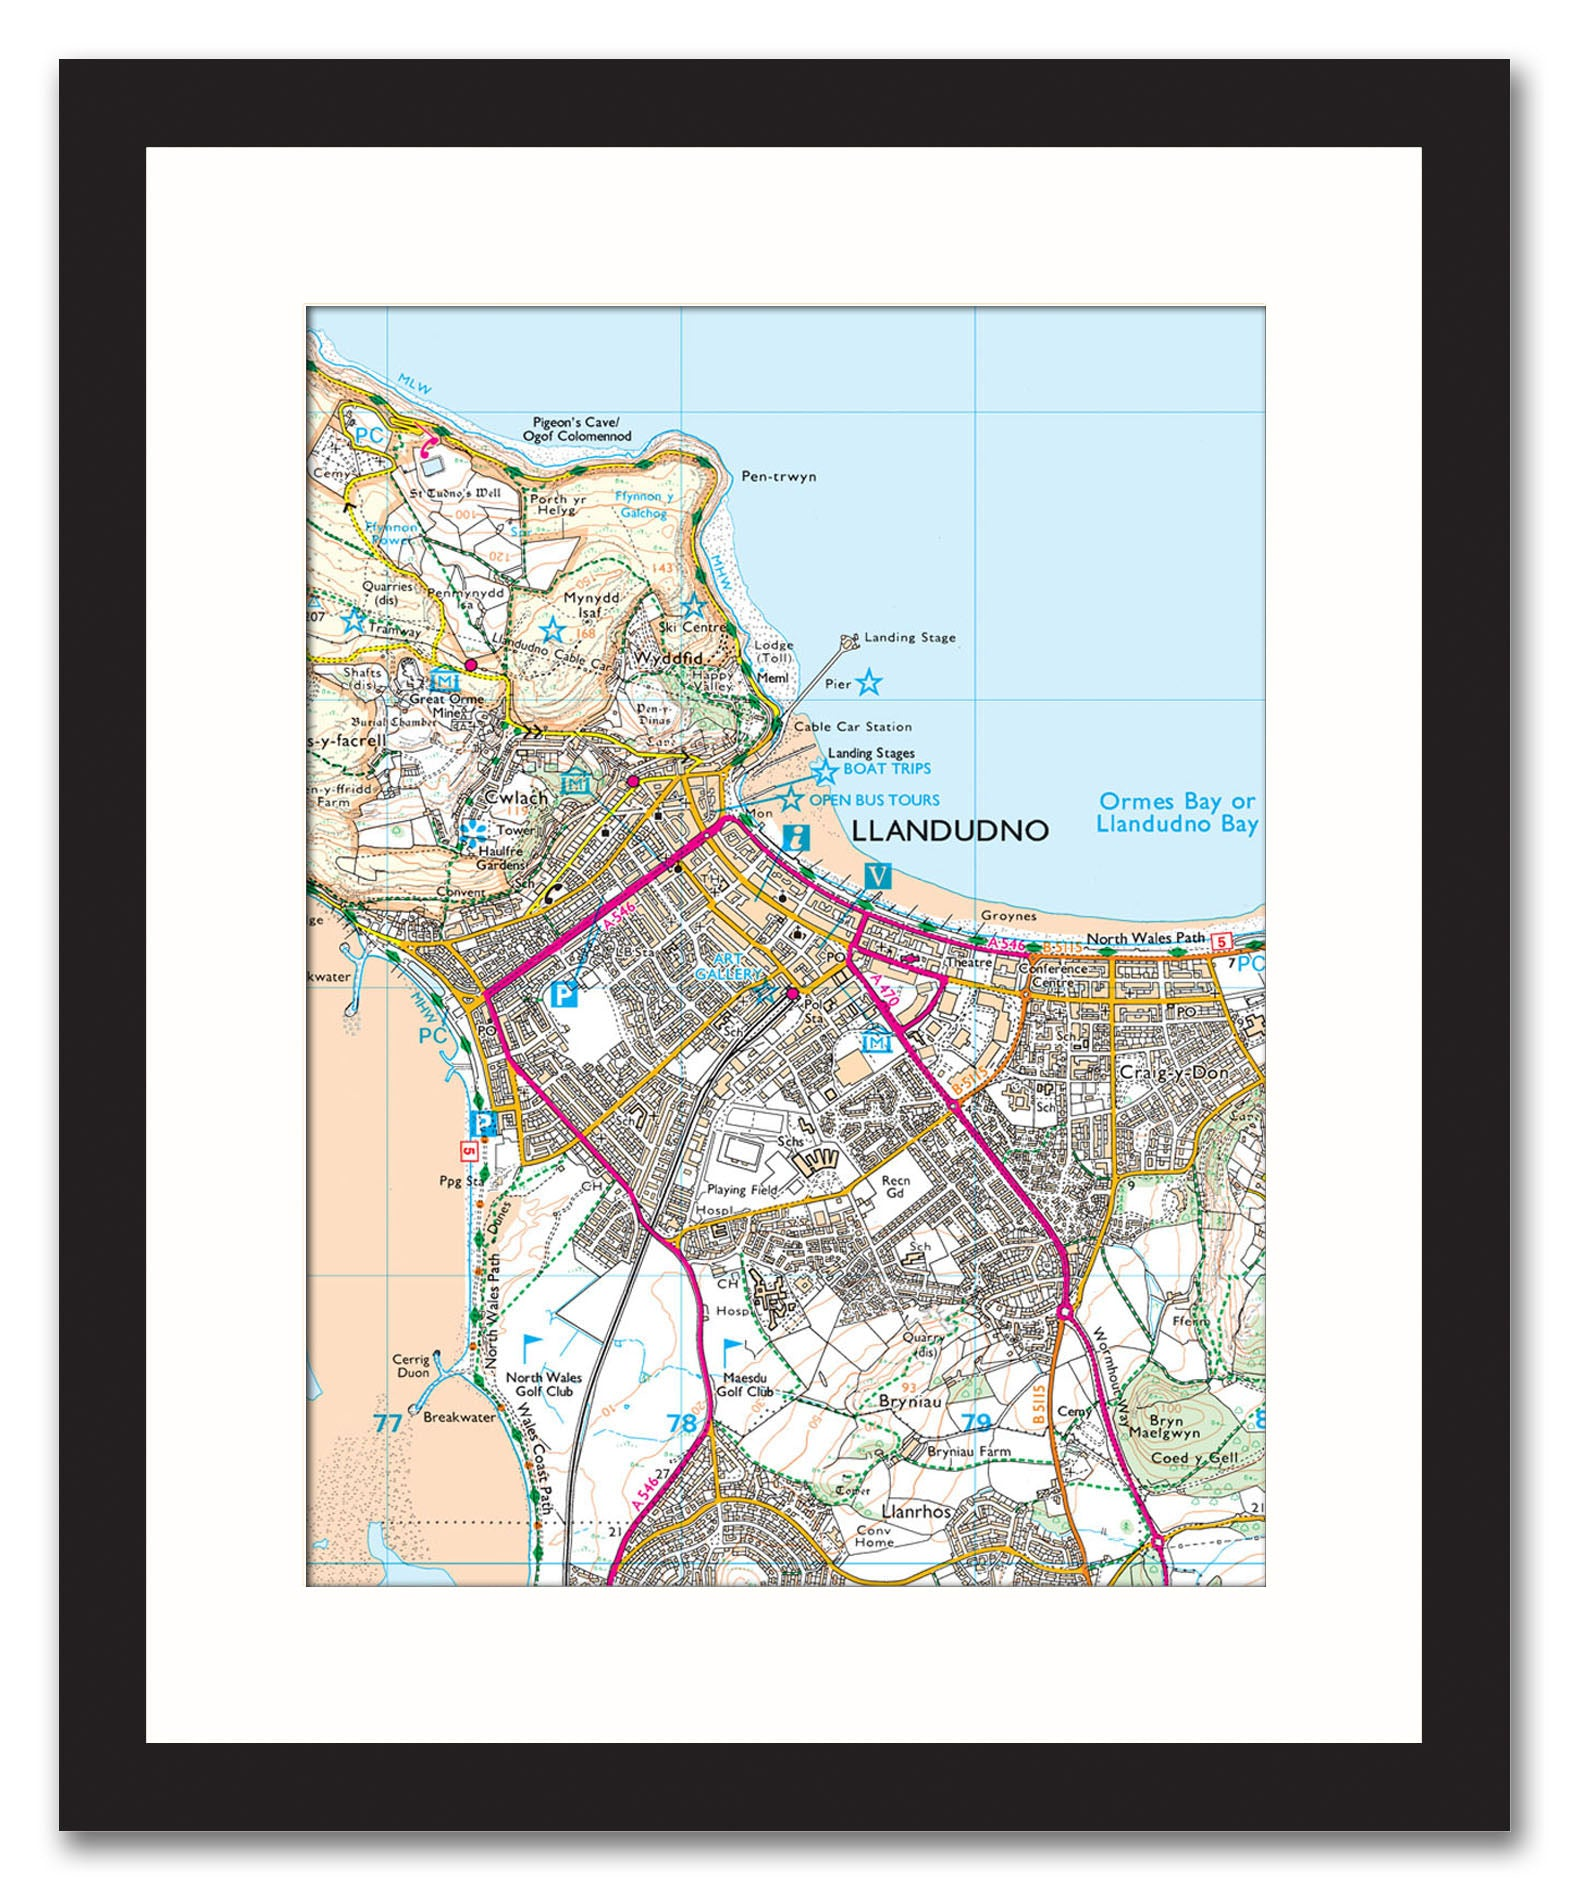 Framed Map Custom Ordnance Survey Explorer Map from Love Maps